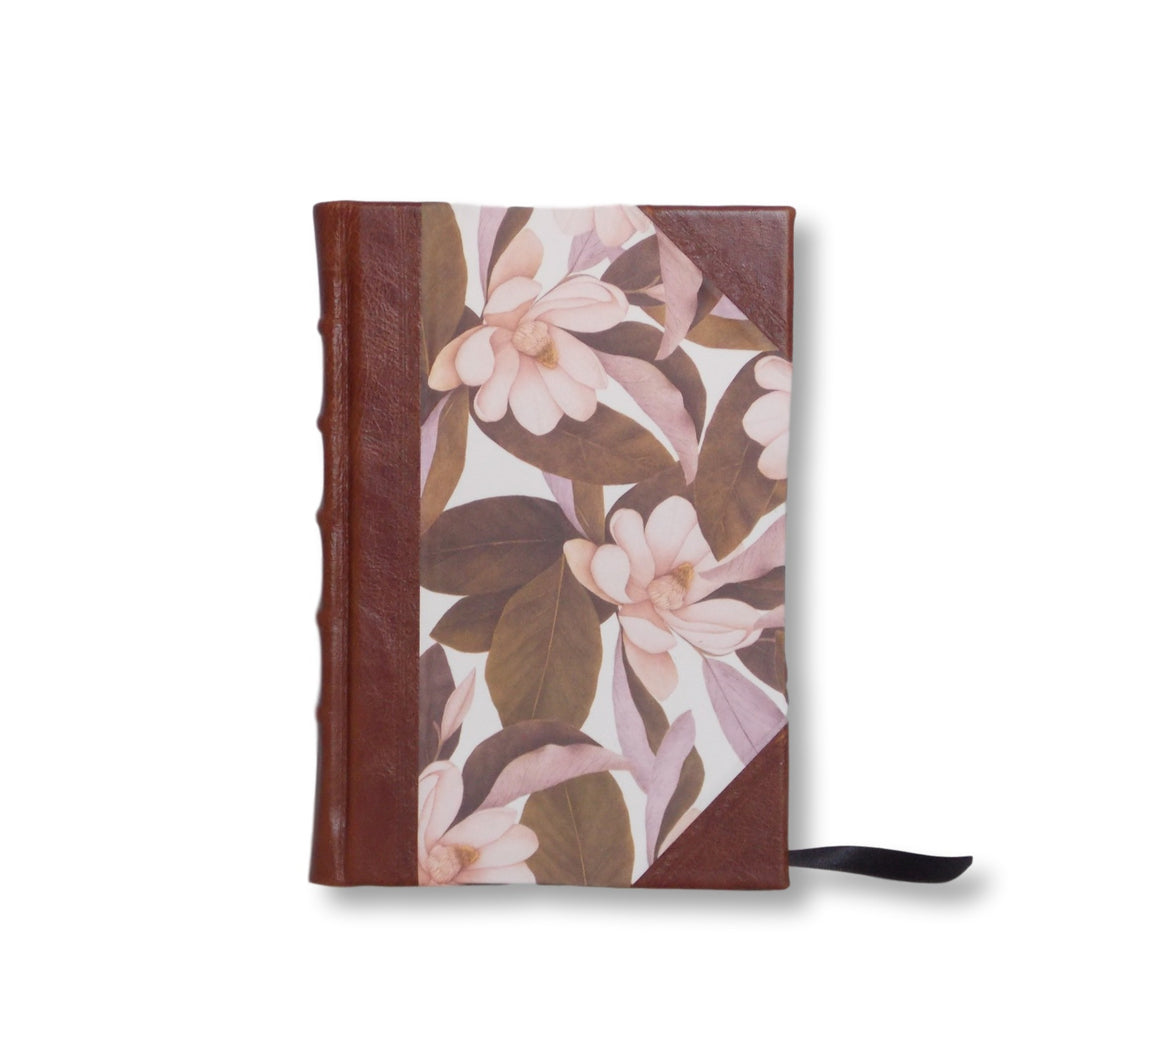 Half Leather Journal - Magnolia